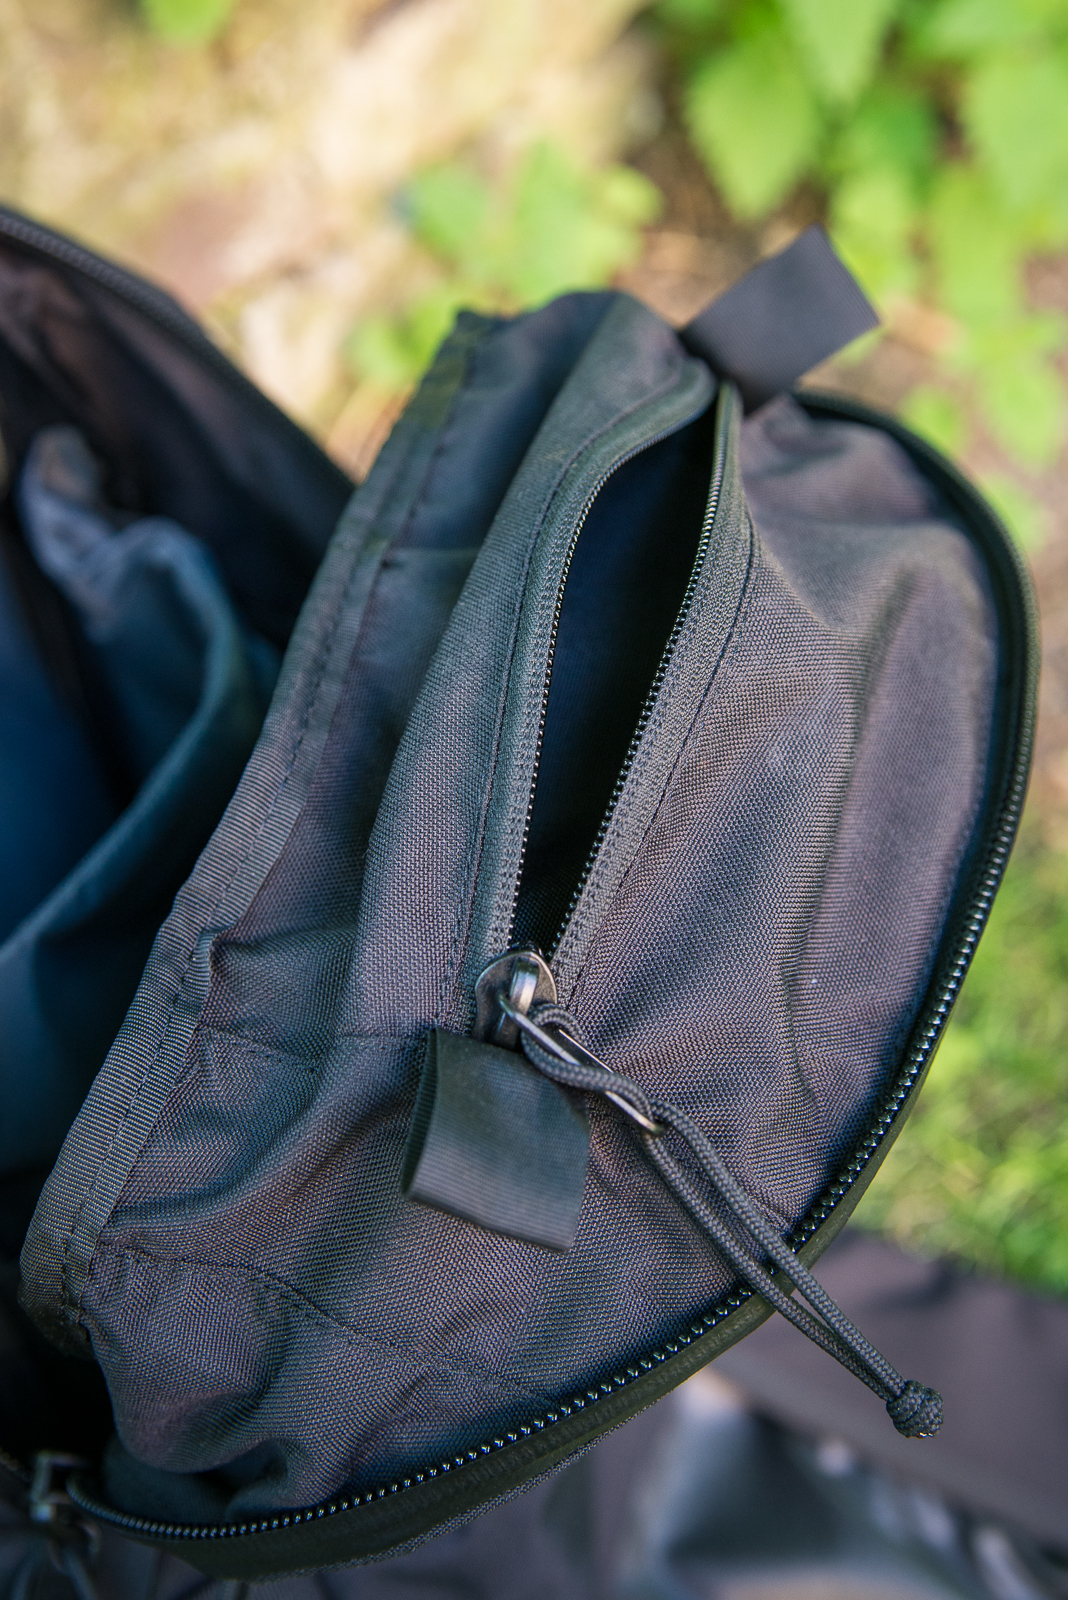 A little triangular pouch sits at the top under the main zipper - a great spot for a glasses case or compact camera.